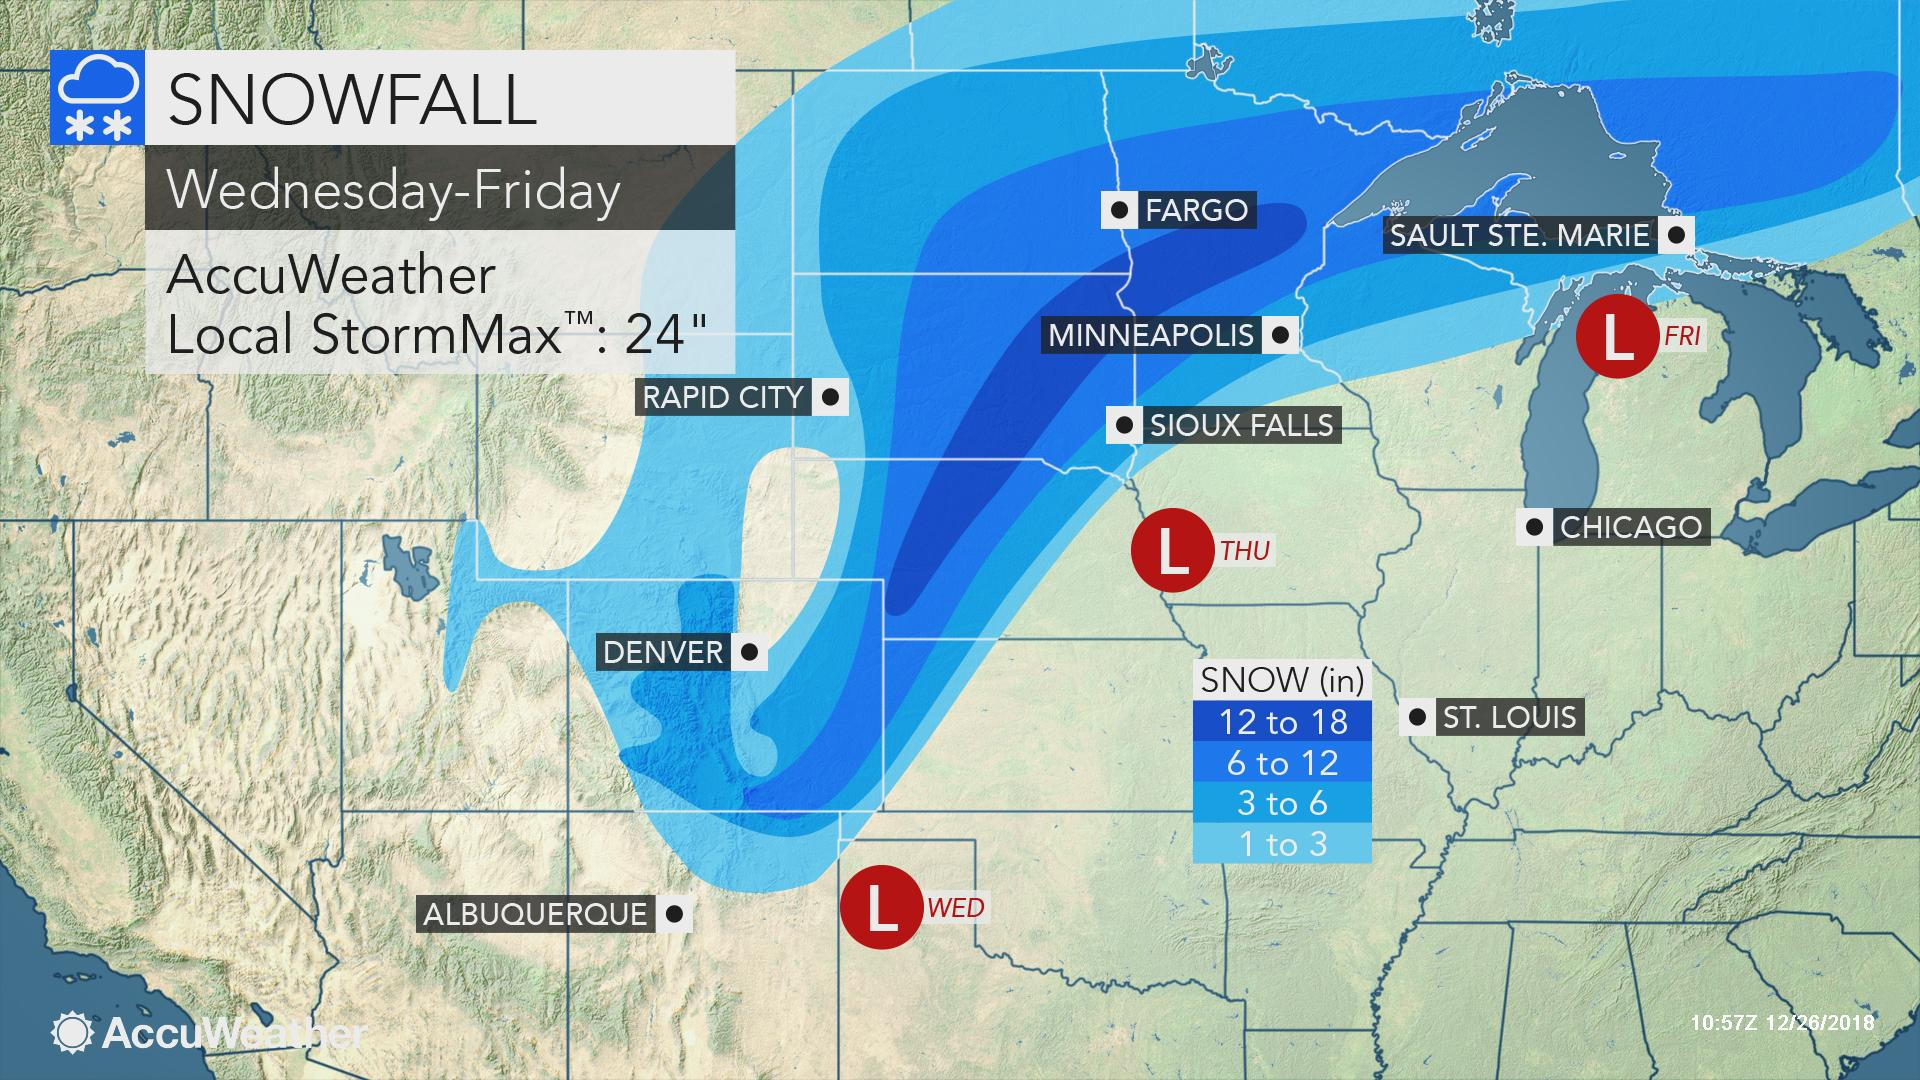 Central US to be slammed by heavy, wind-swept snow in wake ... on west north central states, map of kansas, east coast of the united states, map of philippines, south central united states, map of united kingdom, map of central america, map of illinois, northwestern united states, map of europe, map of mid united states, map of west central united states, west south central states, map of chicago, map of uk, map of western, pacific states, eastern united states, map of colorado, map of eastern, map of far west, map of north central united states, southeastern united states, map of singapore, map of south, map of texas, map of se, united states of america, map of history,